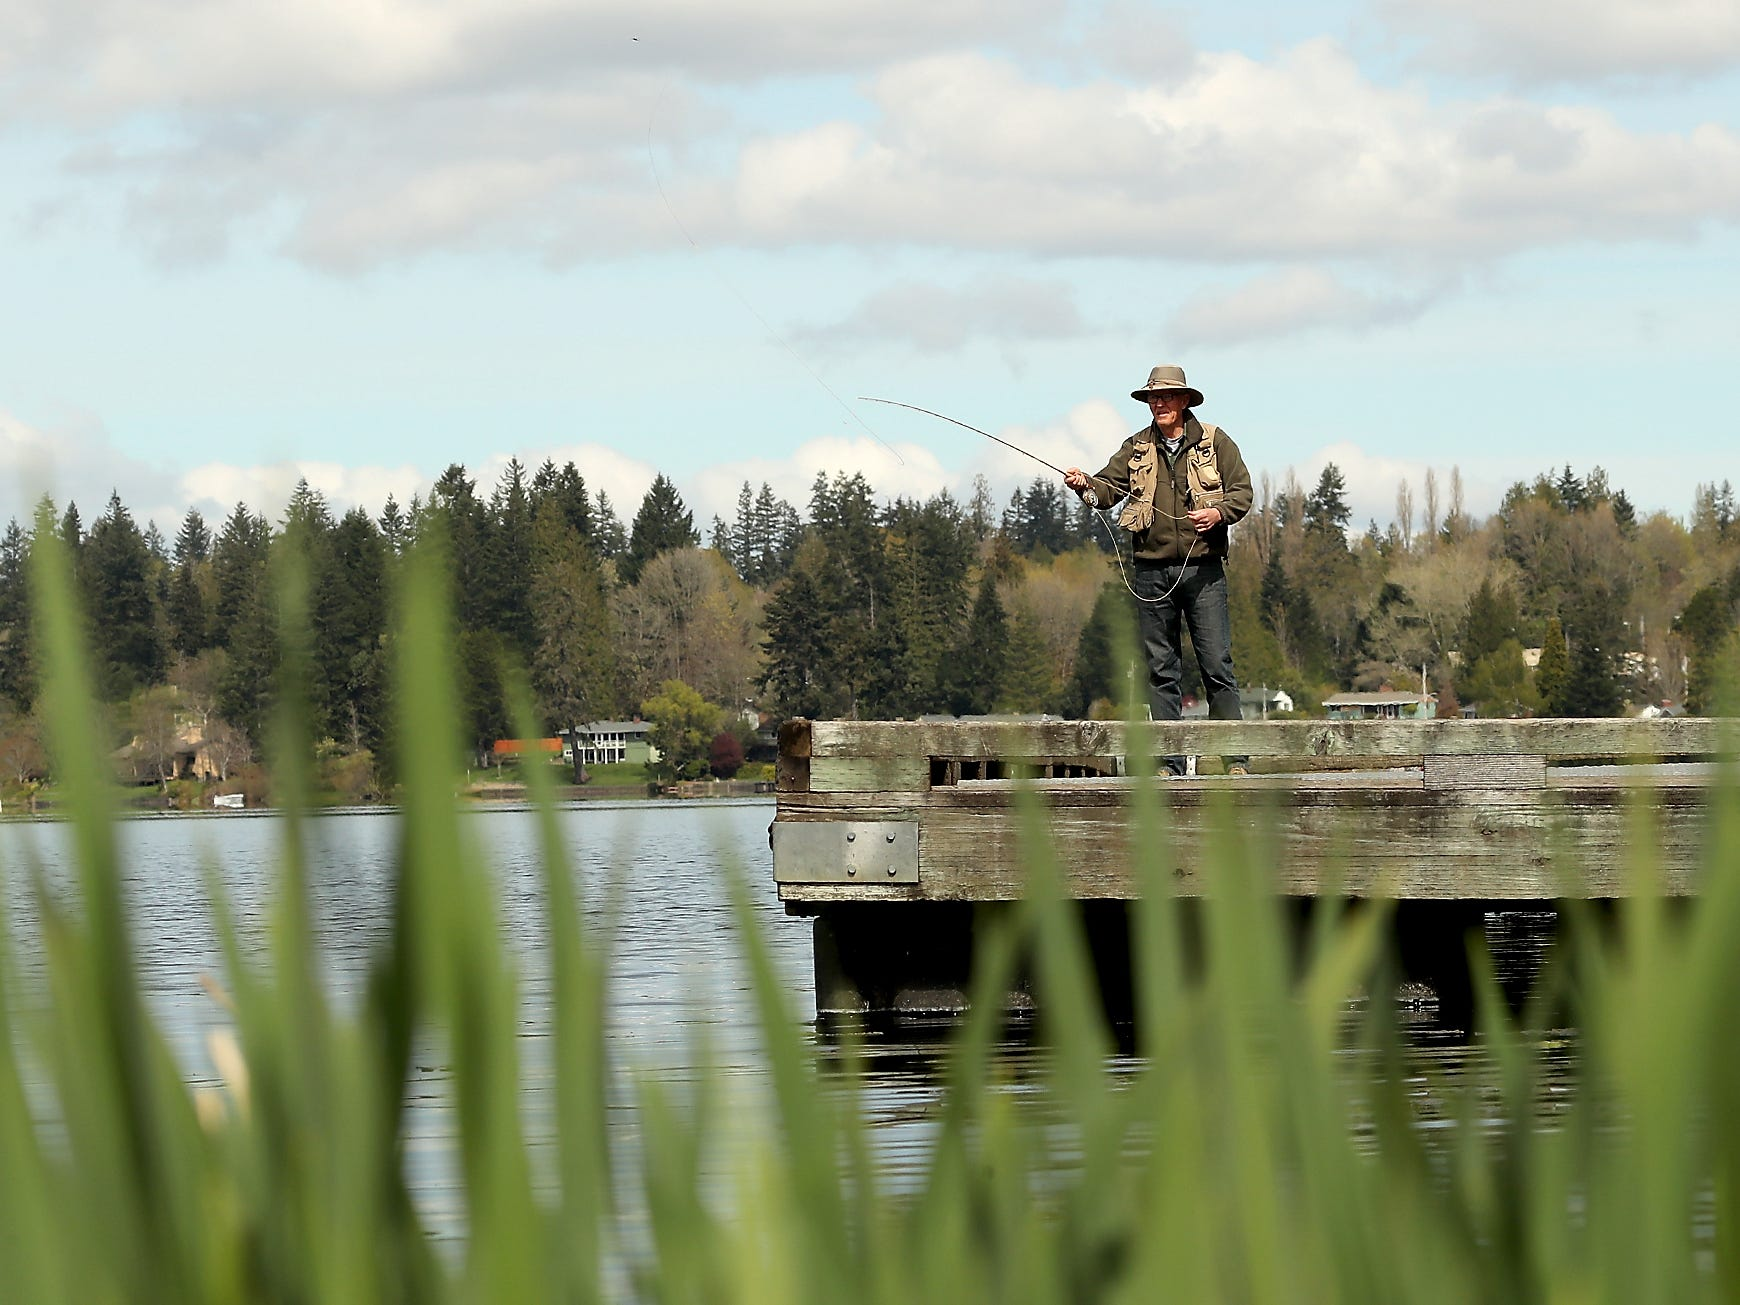 Steve Adamson, of Bremerton, tries out his new fly fishing rod on the dock of Kitsap Lake Park in Bremerton on Monday, April 15, 2019.